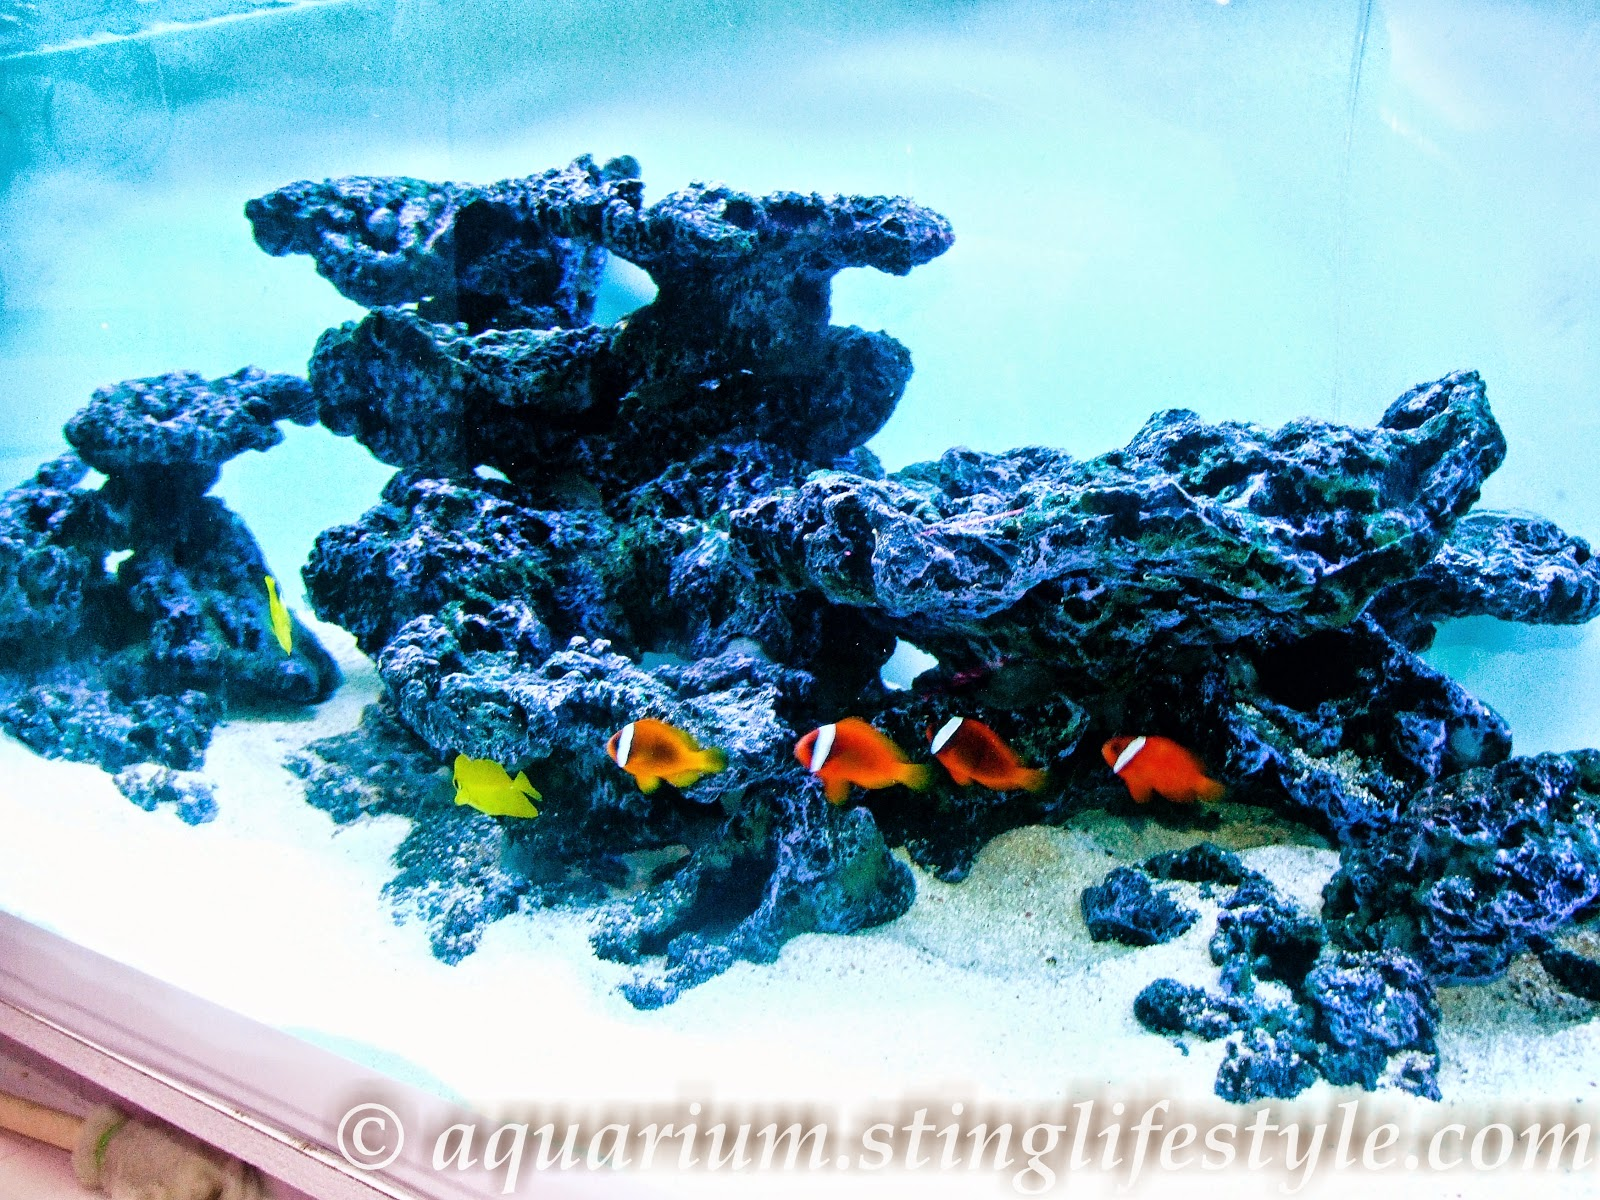 ... Marine Aquarium Photos 7 Ft Bespoke Aquarium. on aquarium sump setup